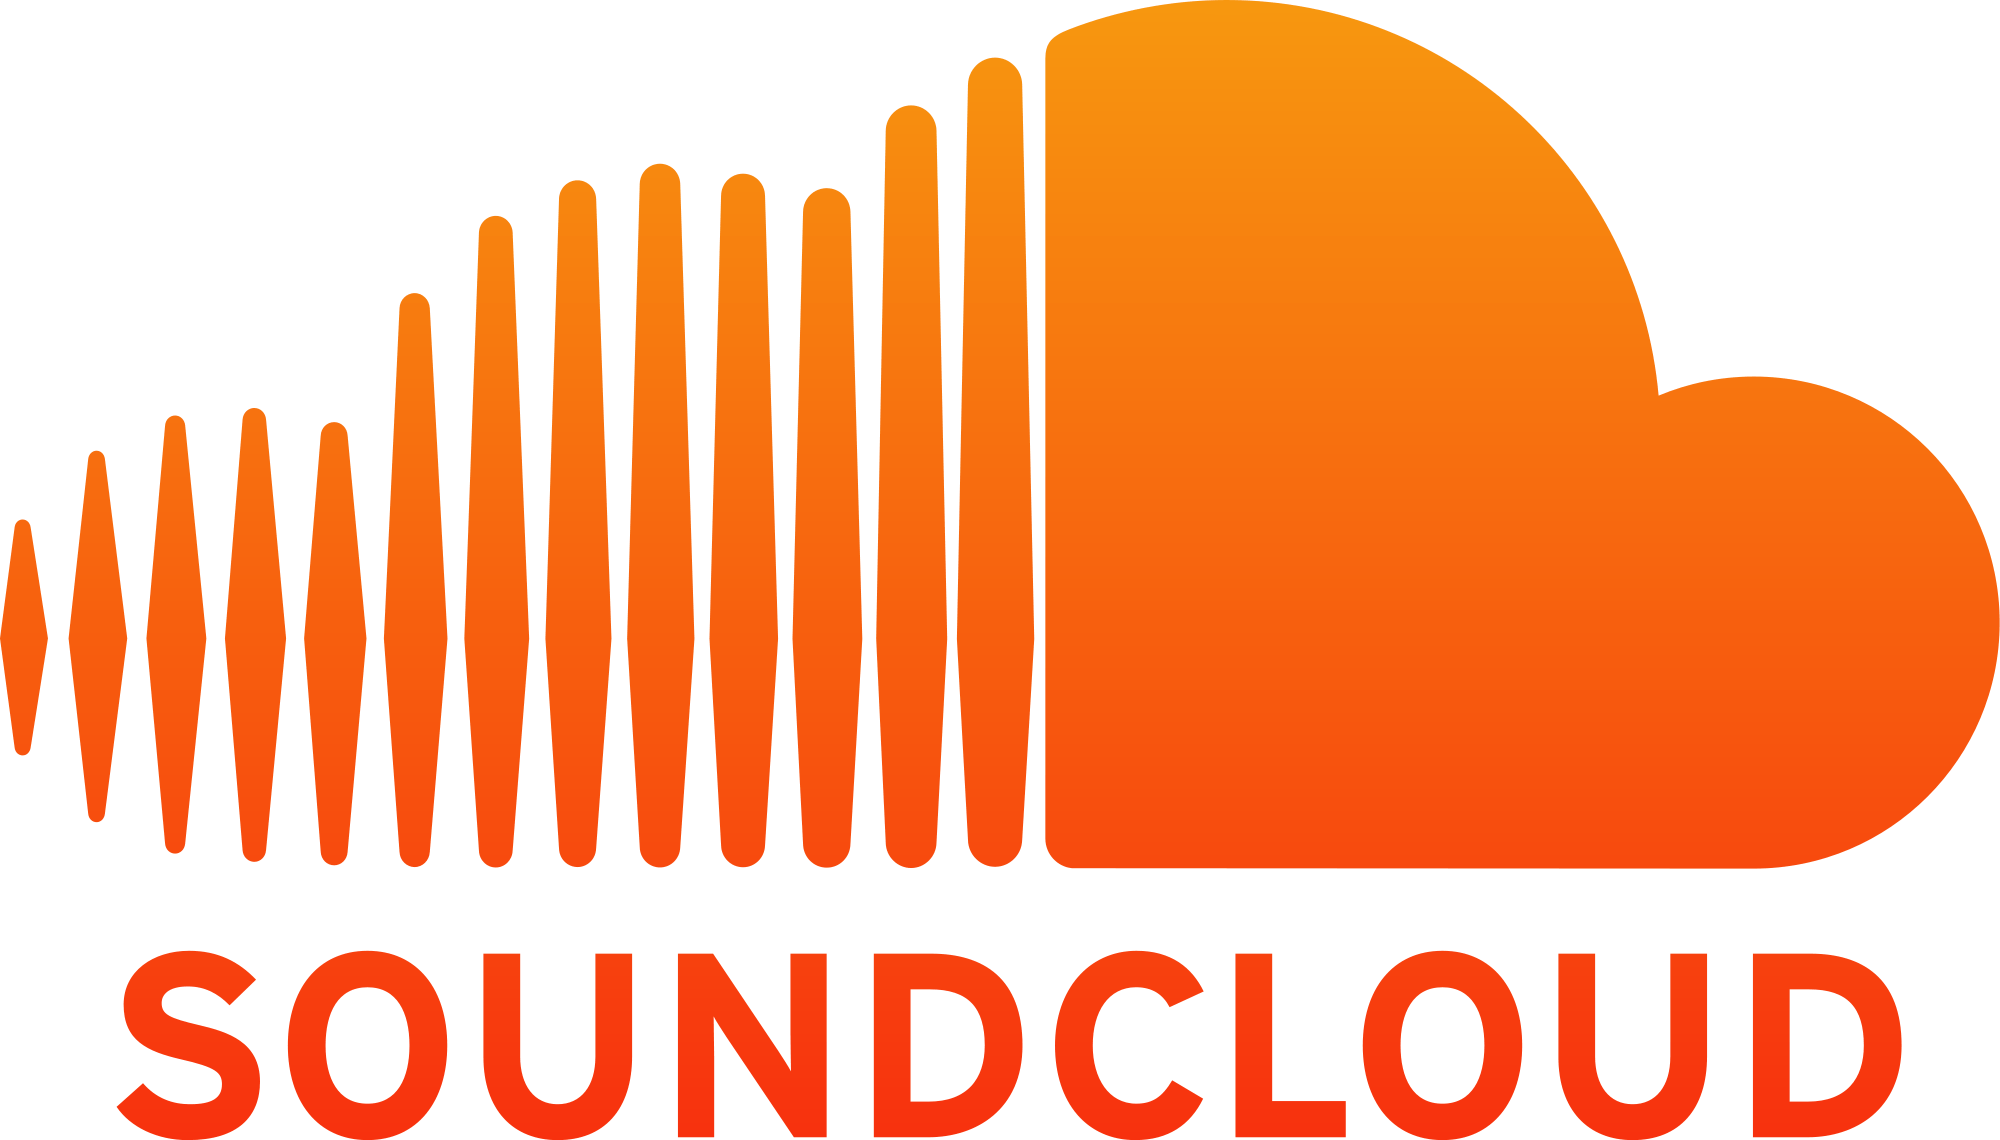 soundcloud png logo